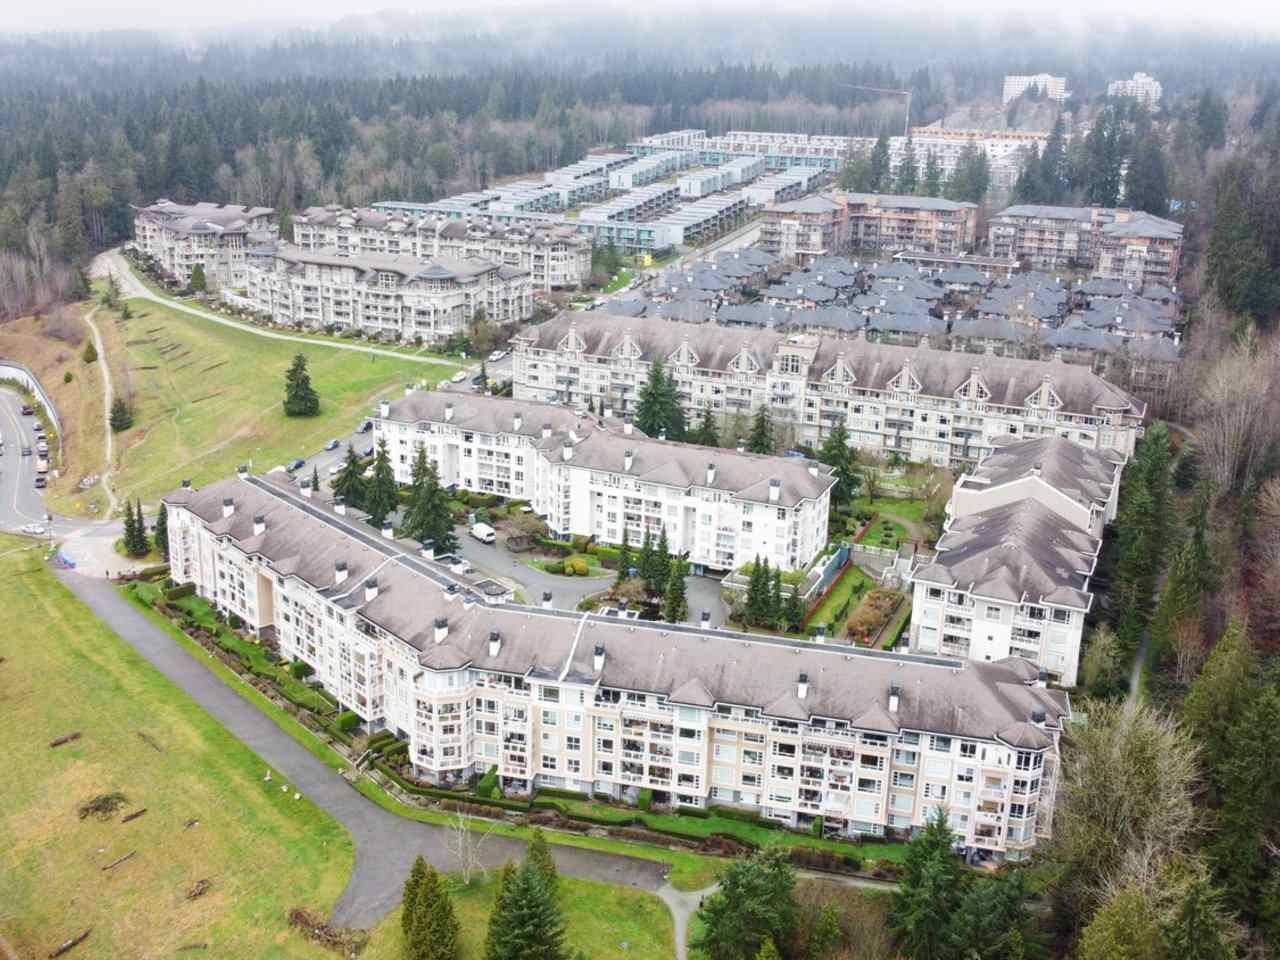 412 3629 DEERCREST DRIVE - Roche Point Apartment/Condo for sale, 1 Bedroom (R2525424) - #40